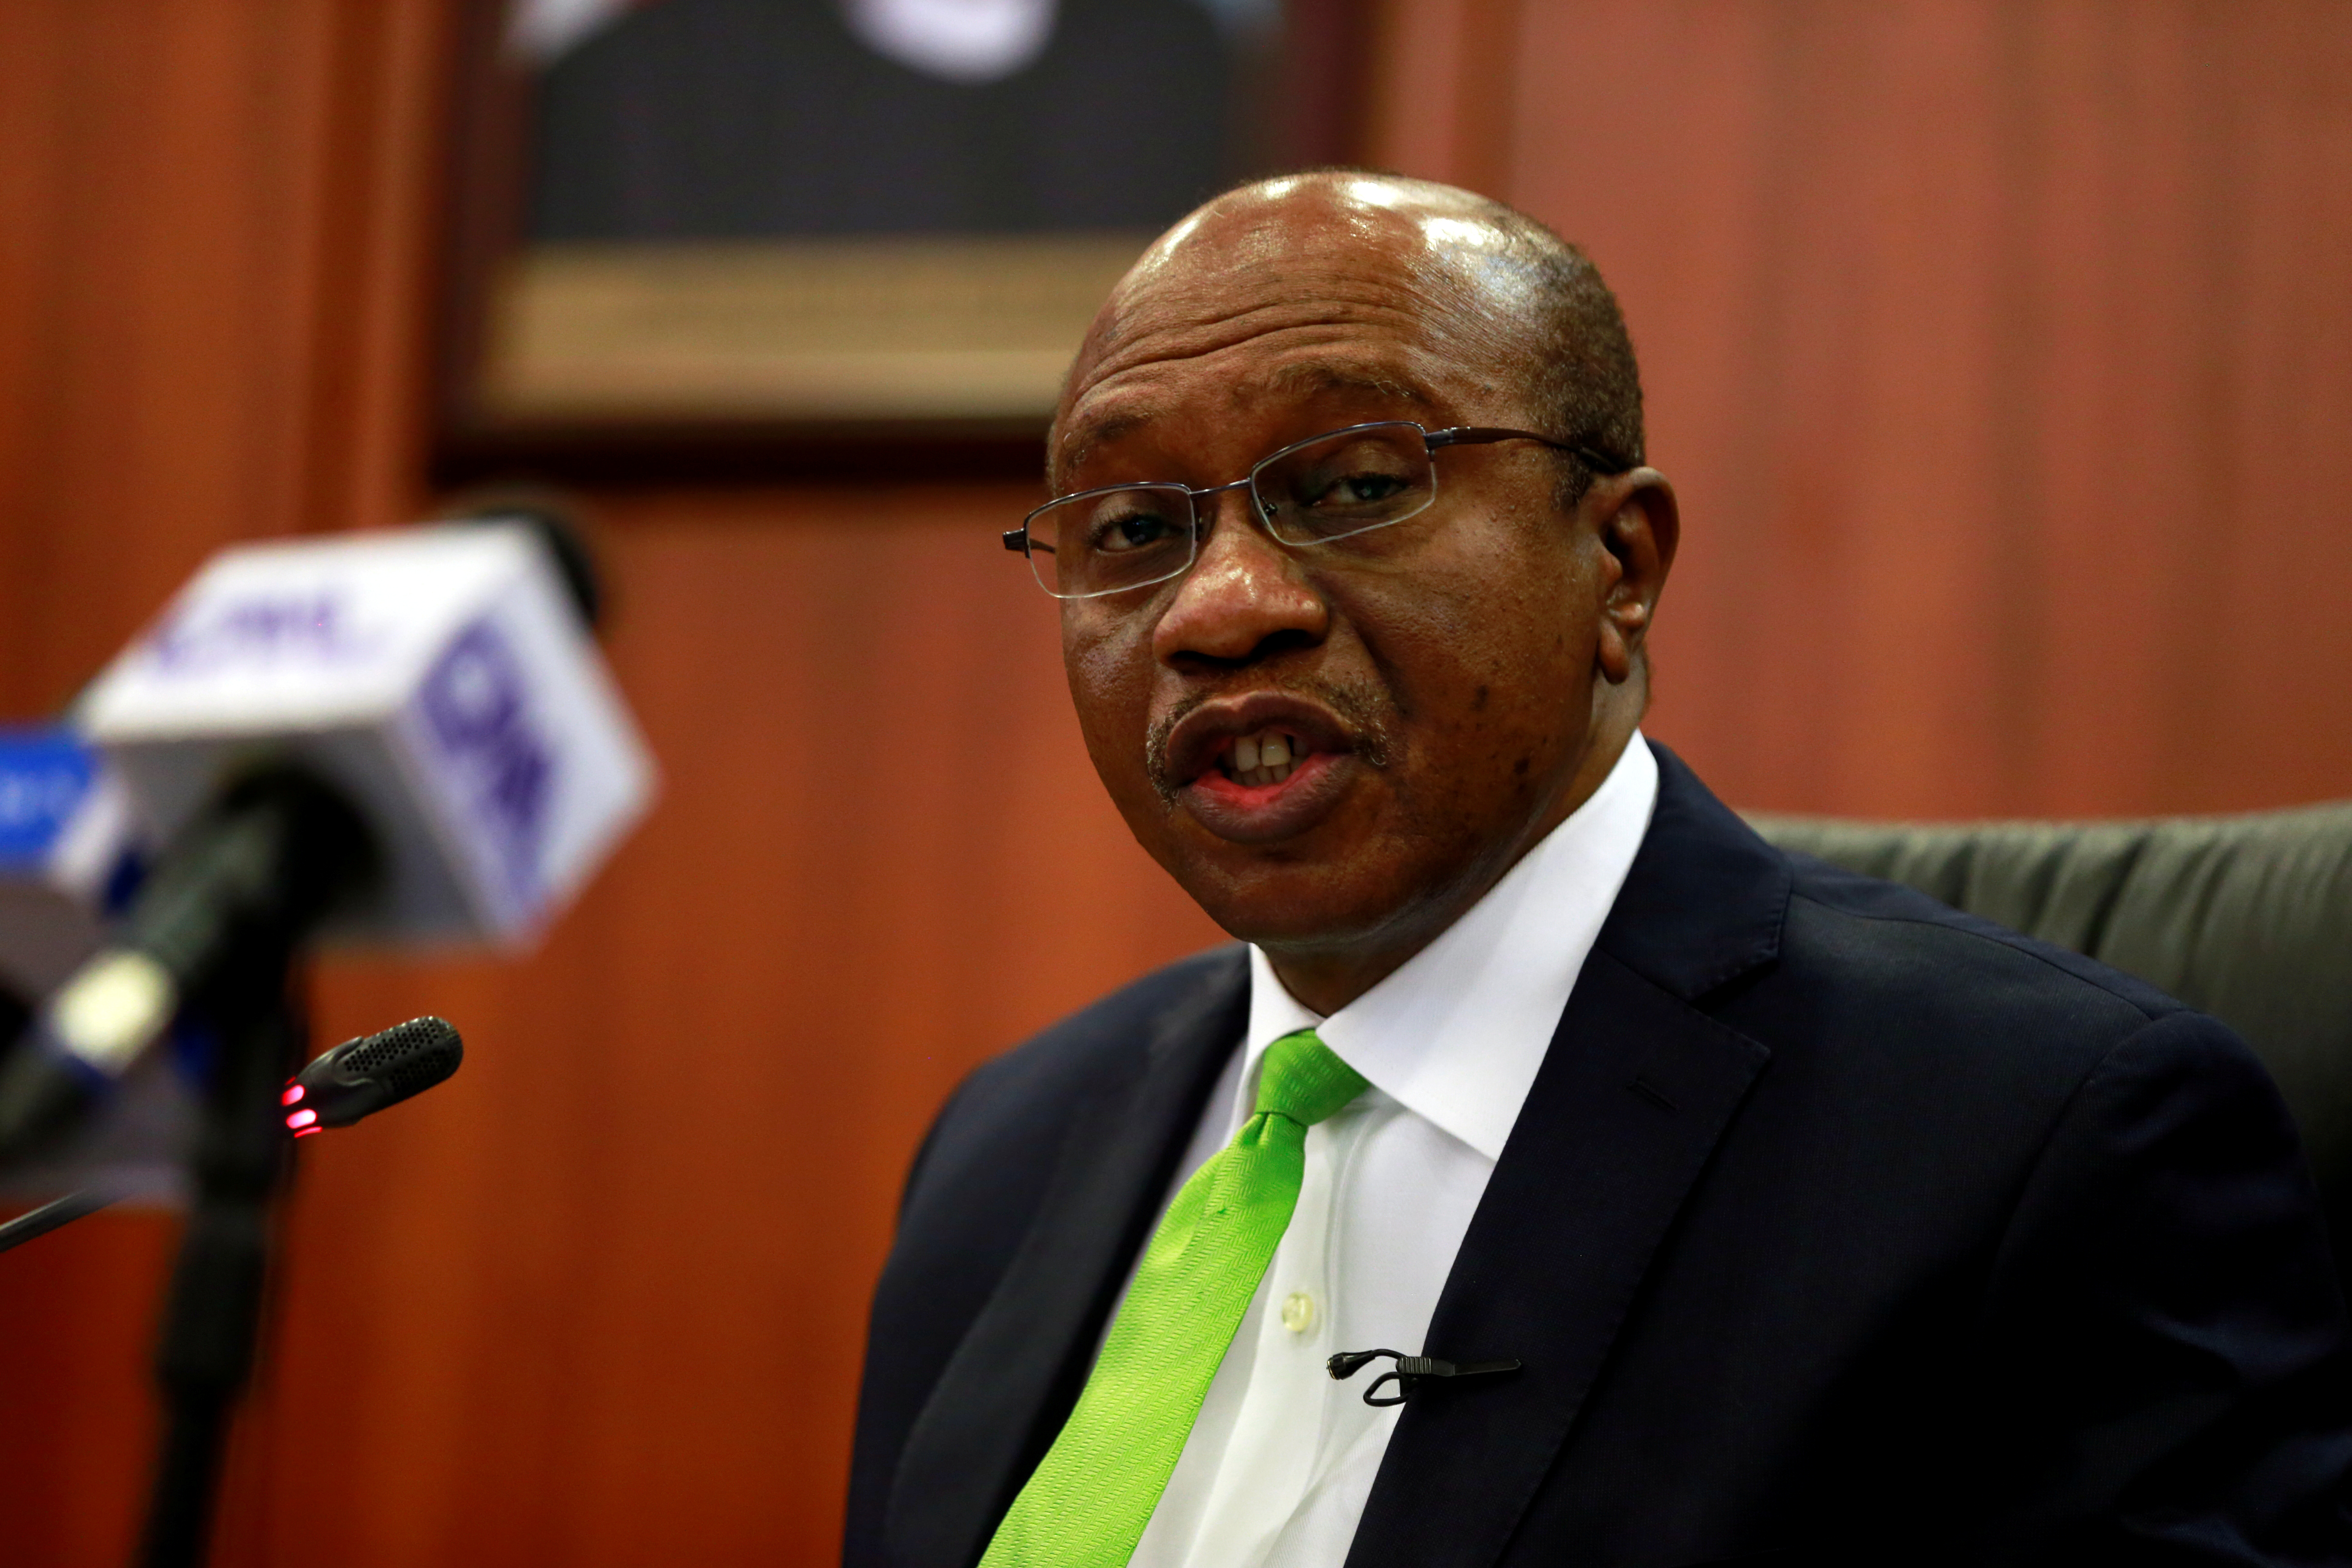 Nigeria's Central Bank Governor Godwin Emefiele briefis the media during the MPC meeting in Abuja, Nigeria January 24, 2020. REUTERS/Afolabi Sotunde/File Photo